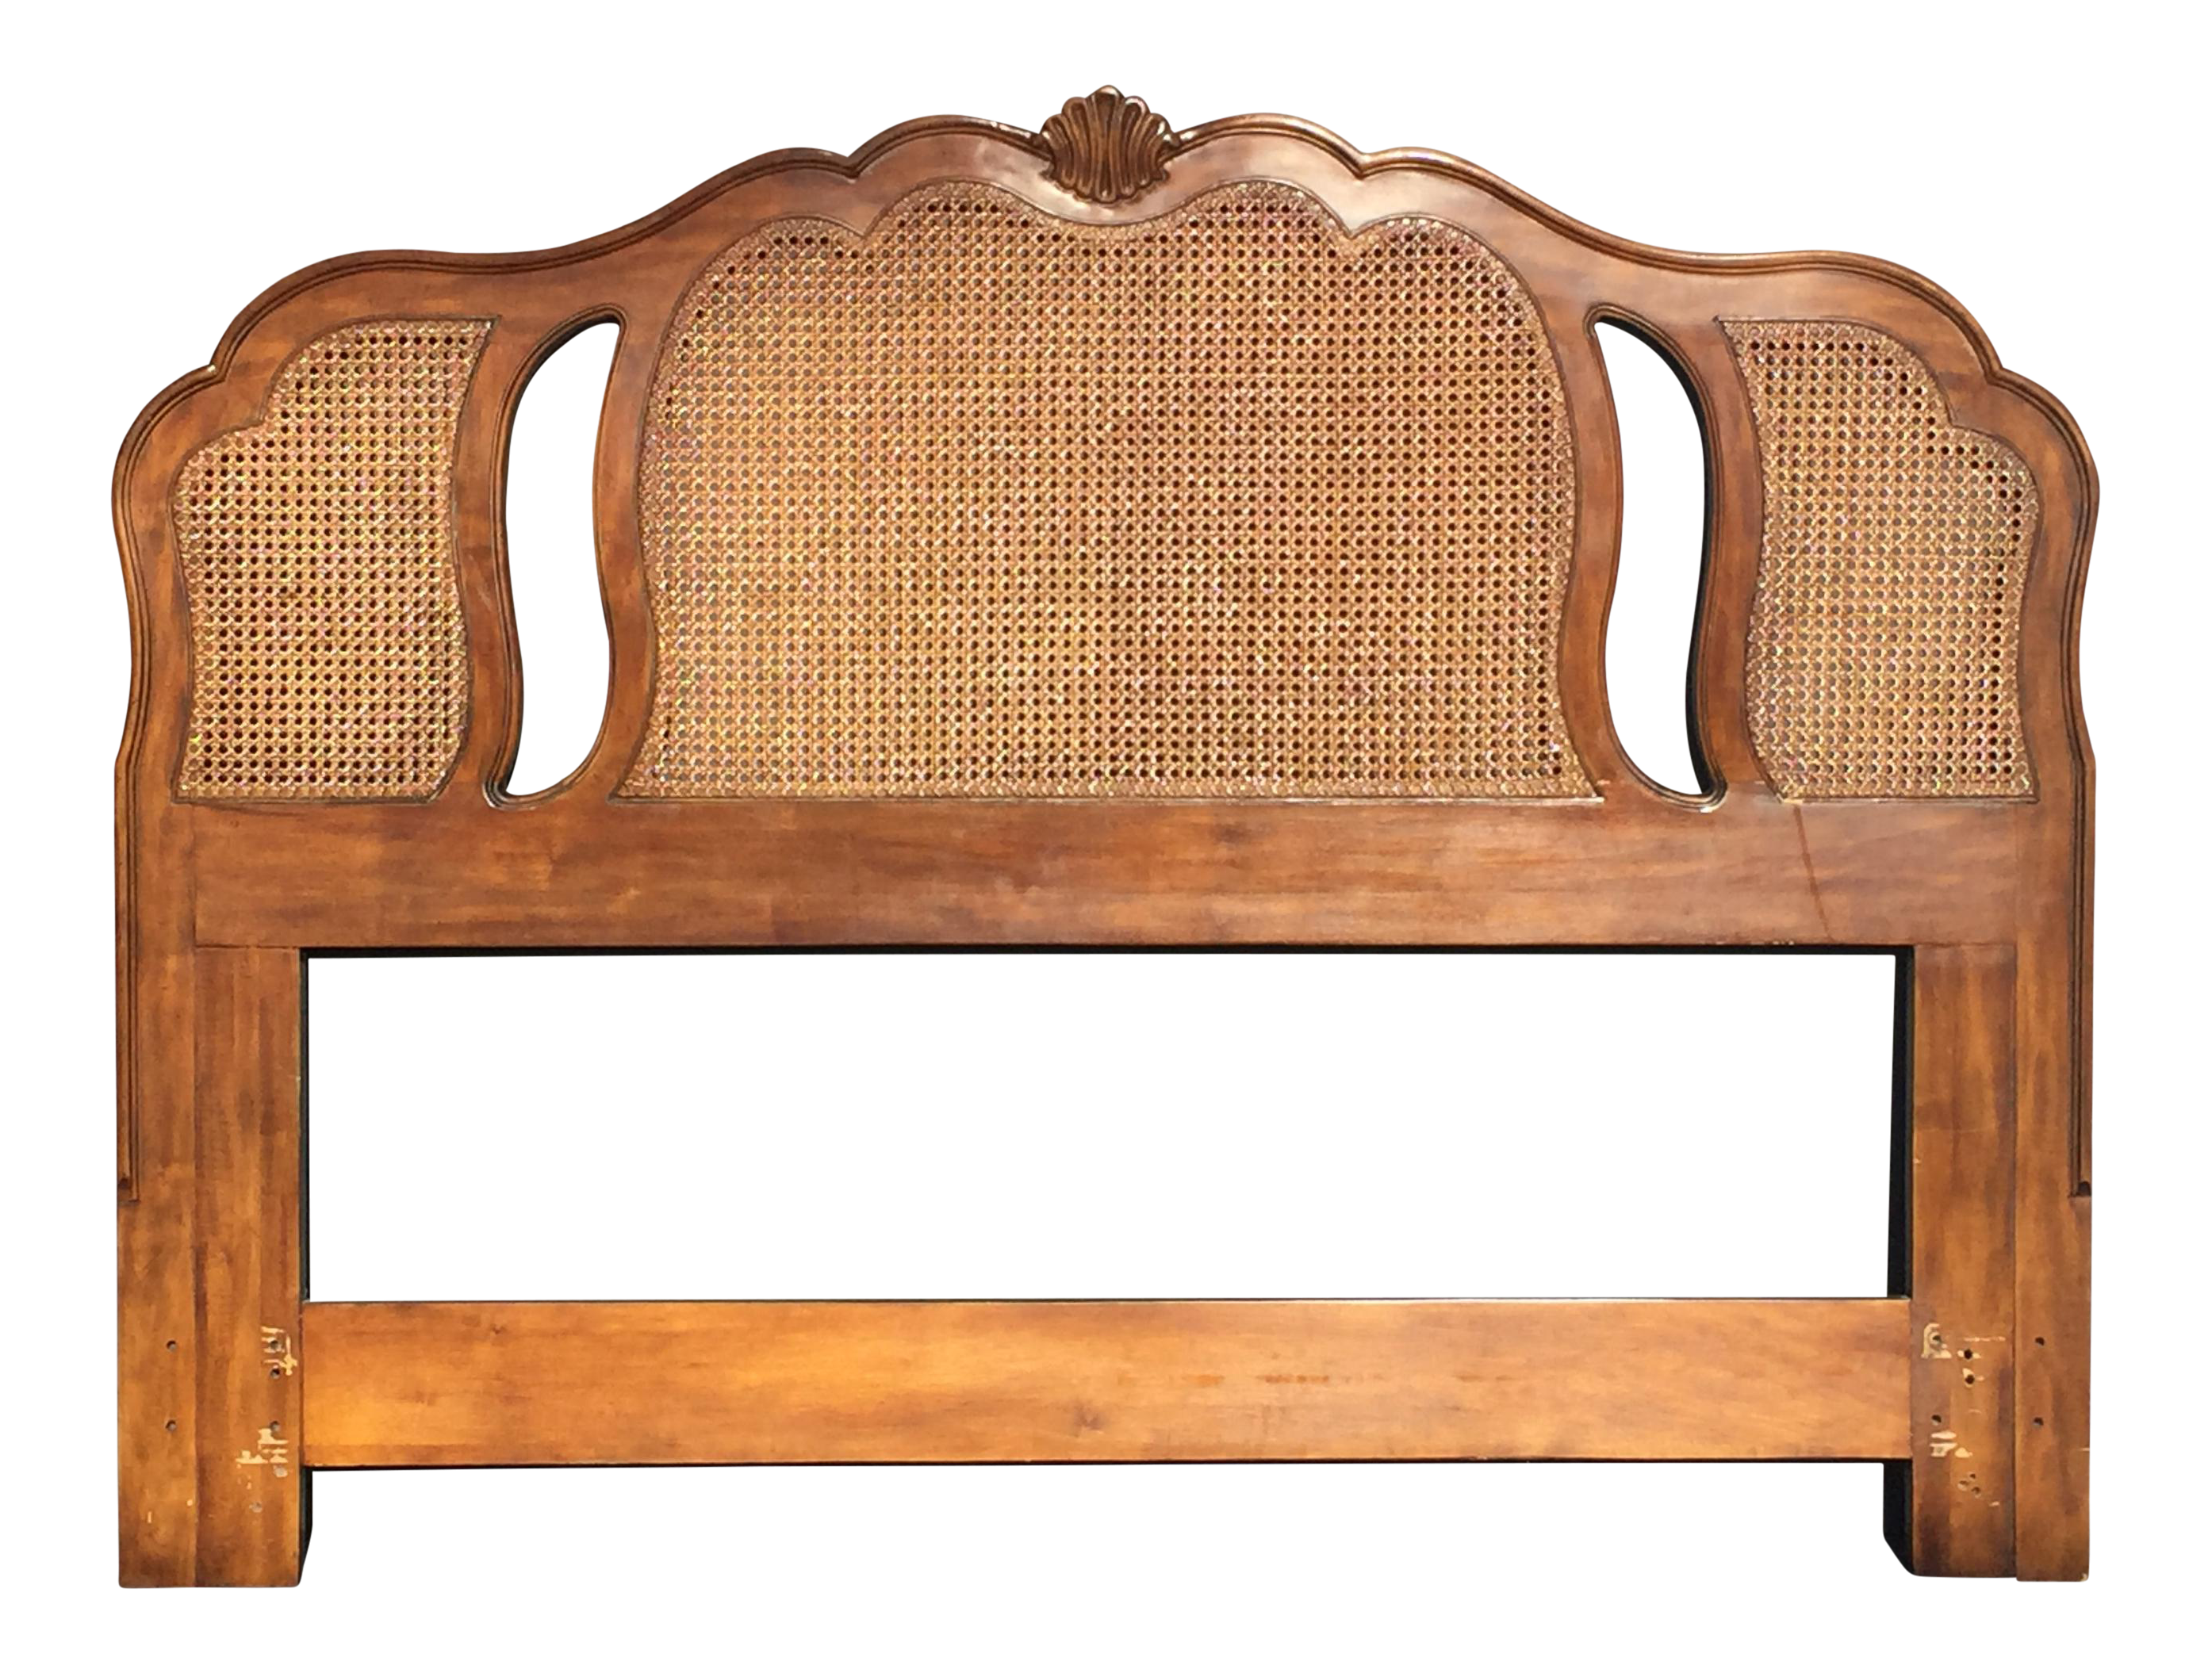 upholstered headboards bedroom shabby provincial and cane louis full rattan wood beautiful farmhouse size iron vintage cast country king decorating superb alluring cozy rococo french footboard design style frame headboard padded carved gold wooden of double antique queen